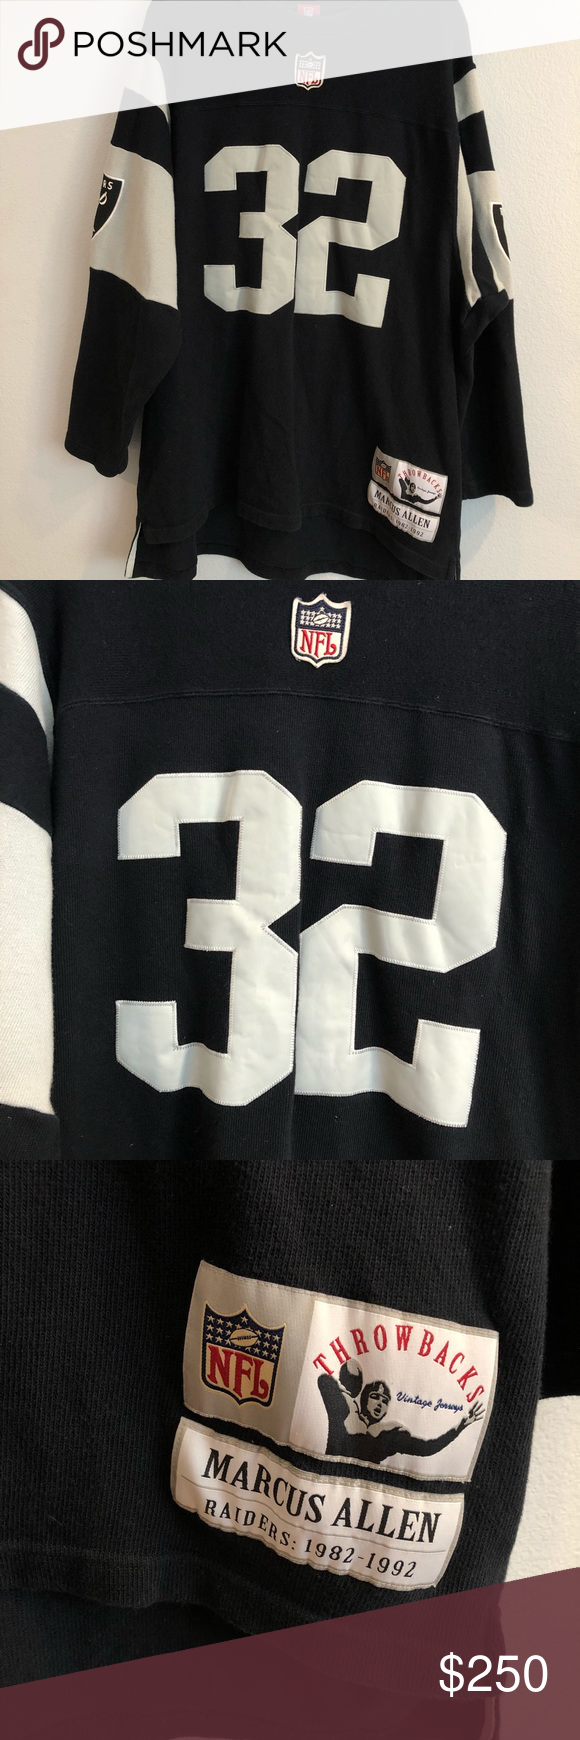 huge selection of 944bb 1dc87 NFL THROWBACK REEBOK RAIDERS MARCUS ALLEN JERSEY NFL ...